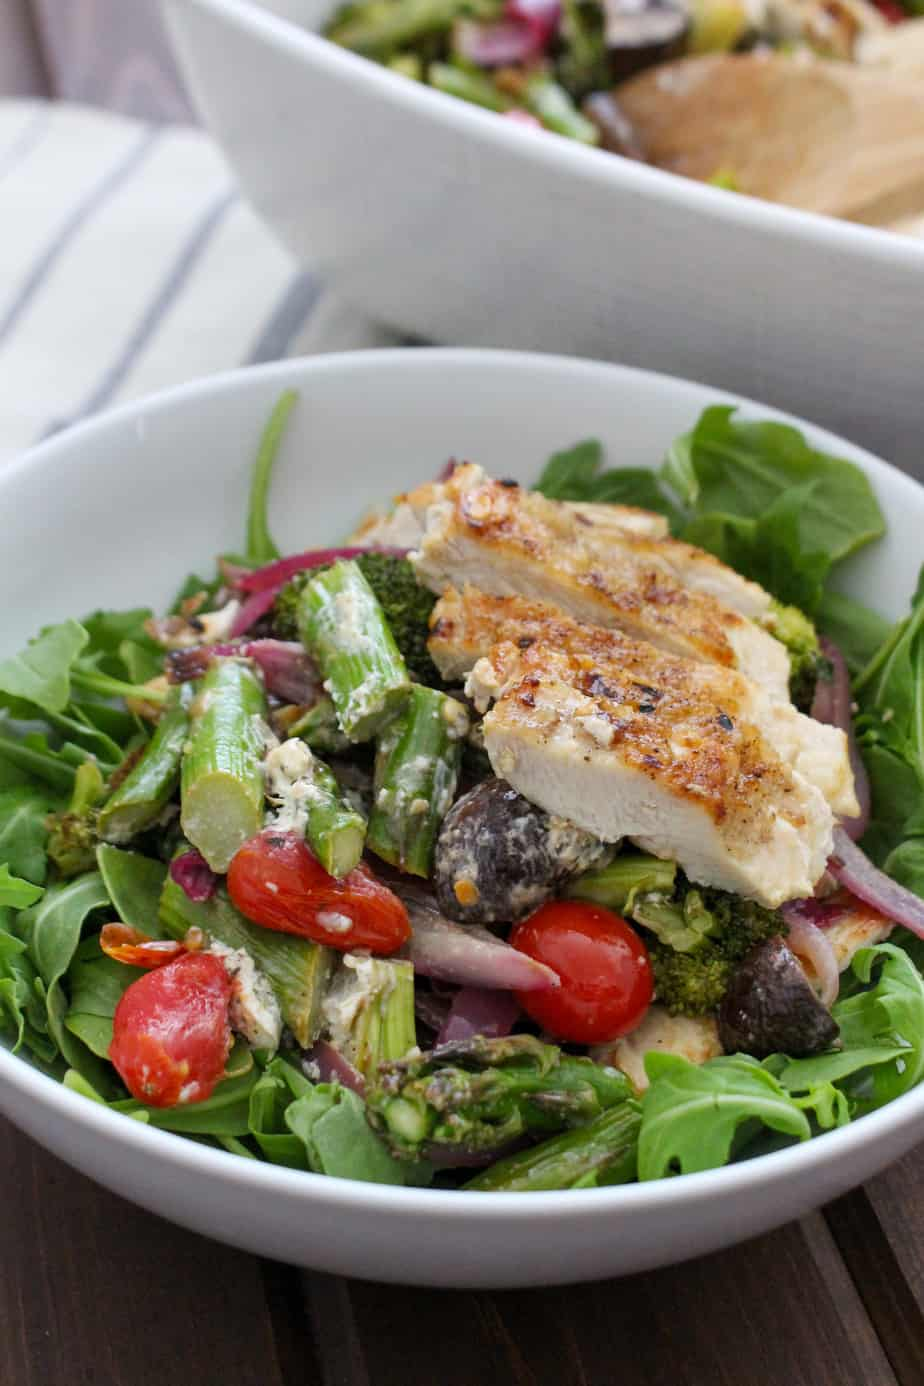 Summer Roasted Vegetable Salad with Crispy Chicken and Goat Cheese | Frugal Nutrition